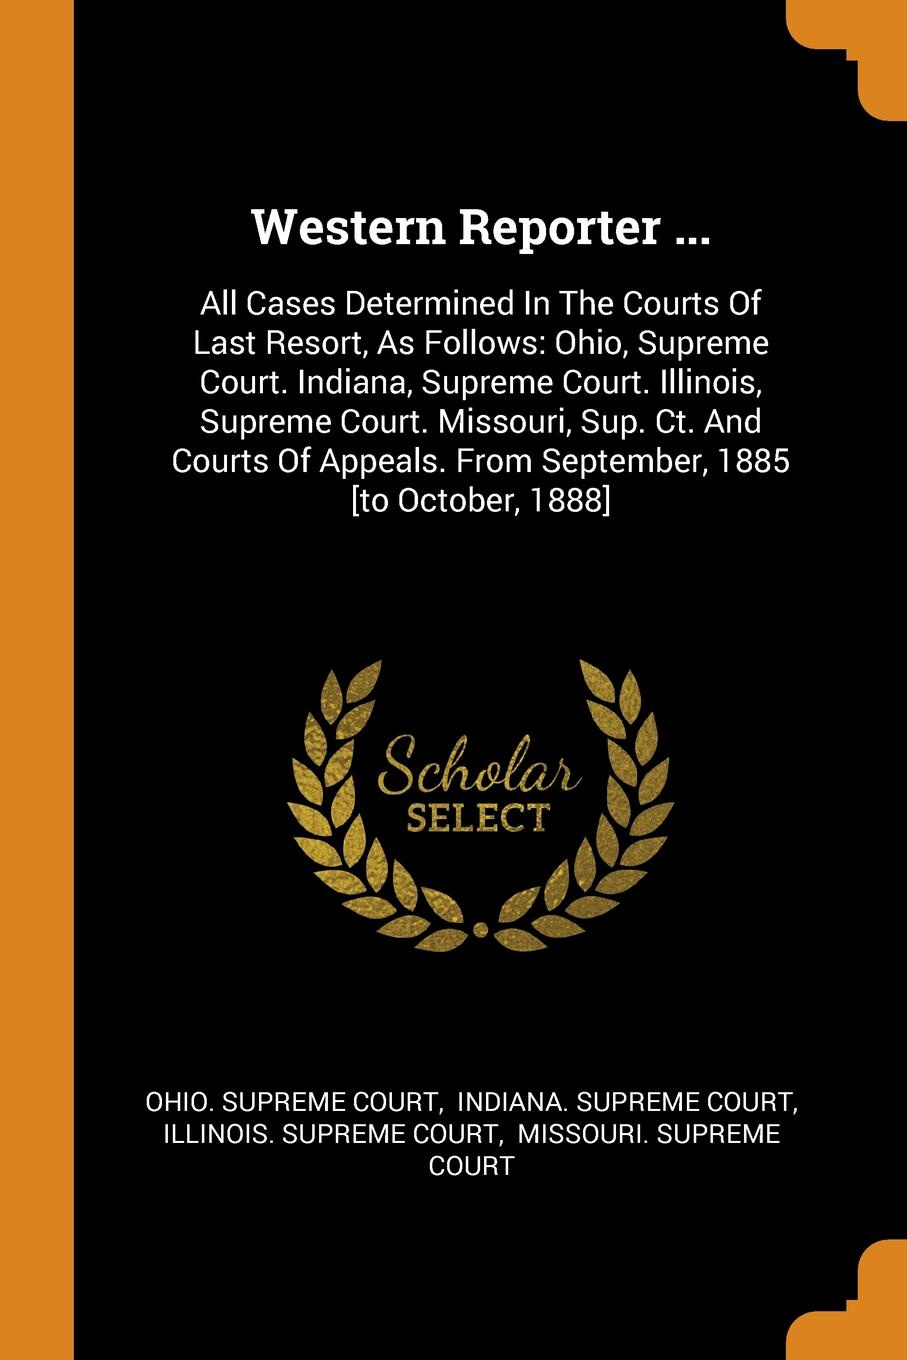 Ohio. Supreme Court Western Reporter ... All Cases Determined In The Courts Of Last Resort, As Follows: Ohio, Supreme Court. Indiana, Supreme Court. Illinois, Supreme Court. Missouri, Sup. Ct. And Courts Of Appeals. From September, 1885 .to October, 1888.